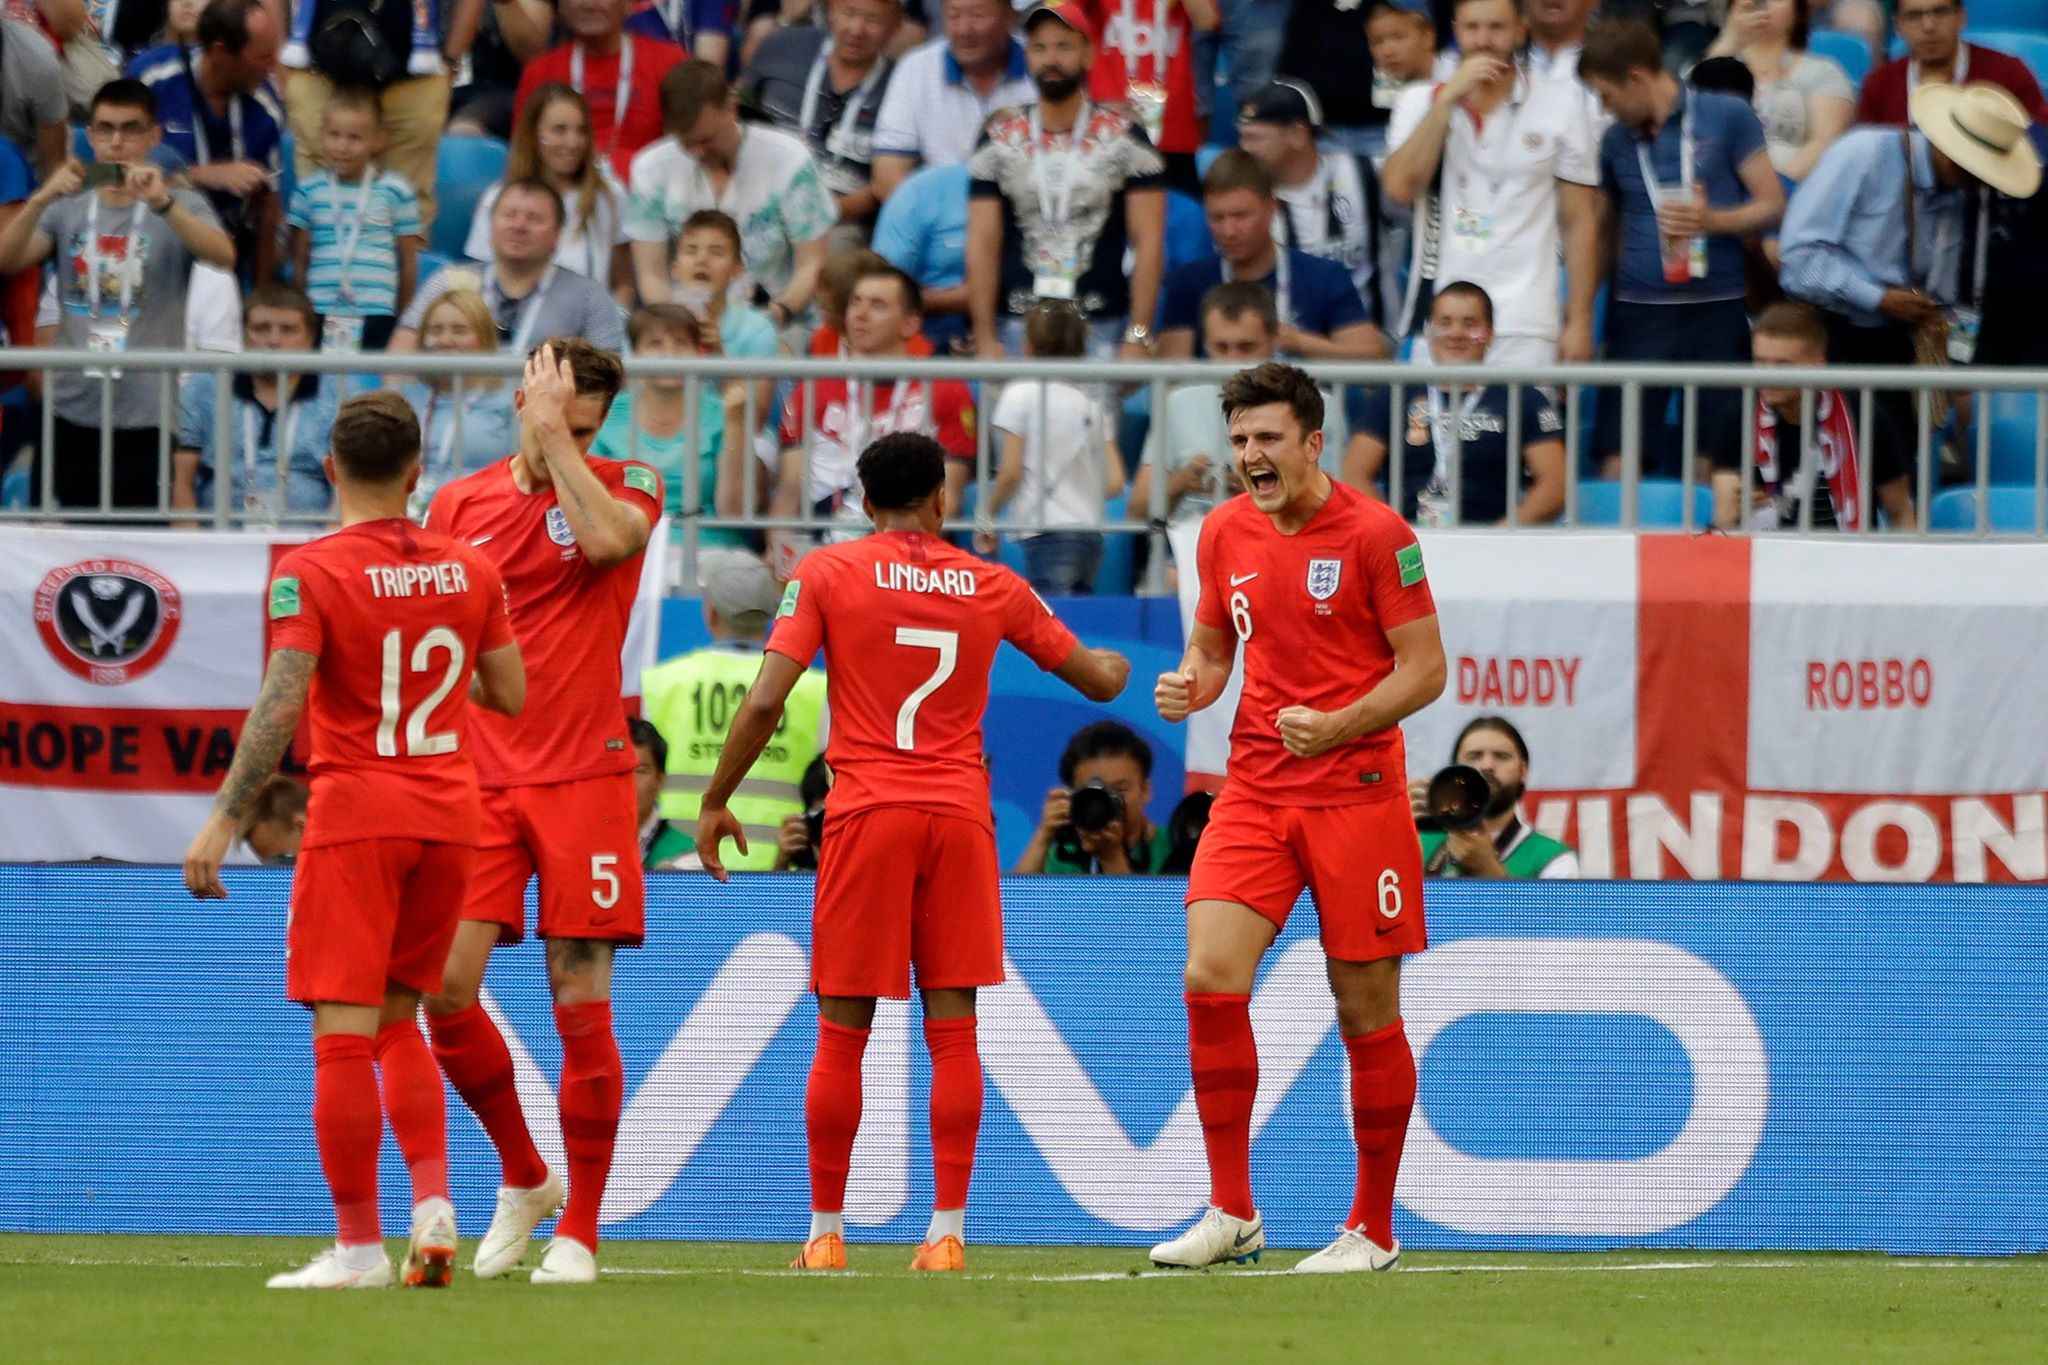 France Vs. Belgium, England Vs. Croatia Semifinals Preview